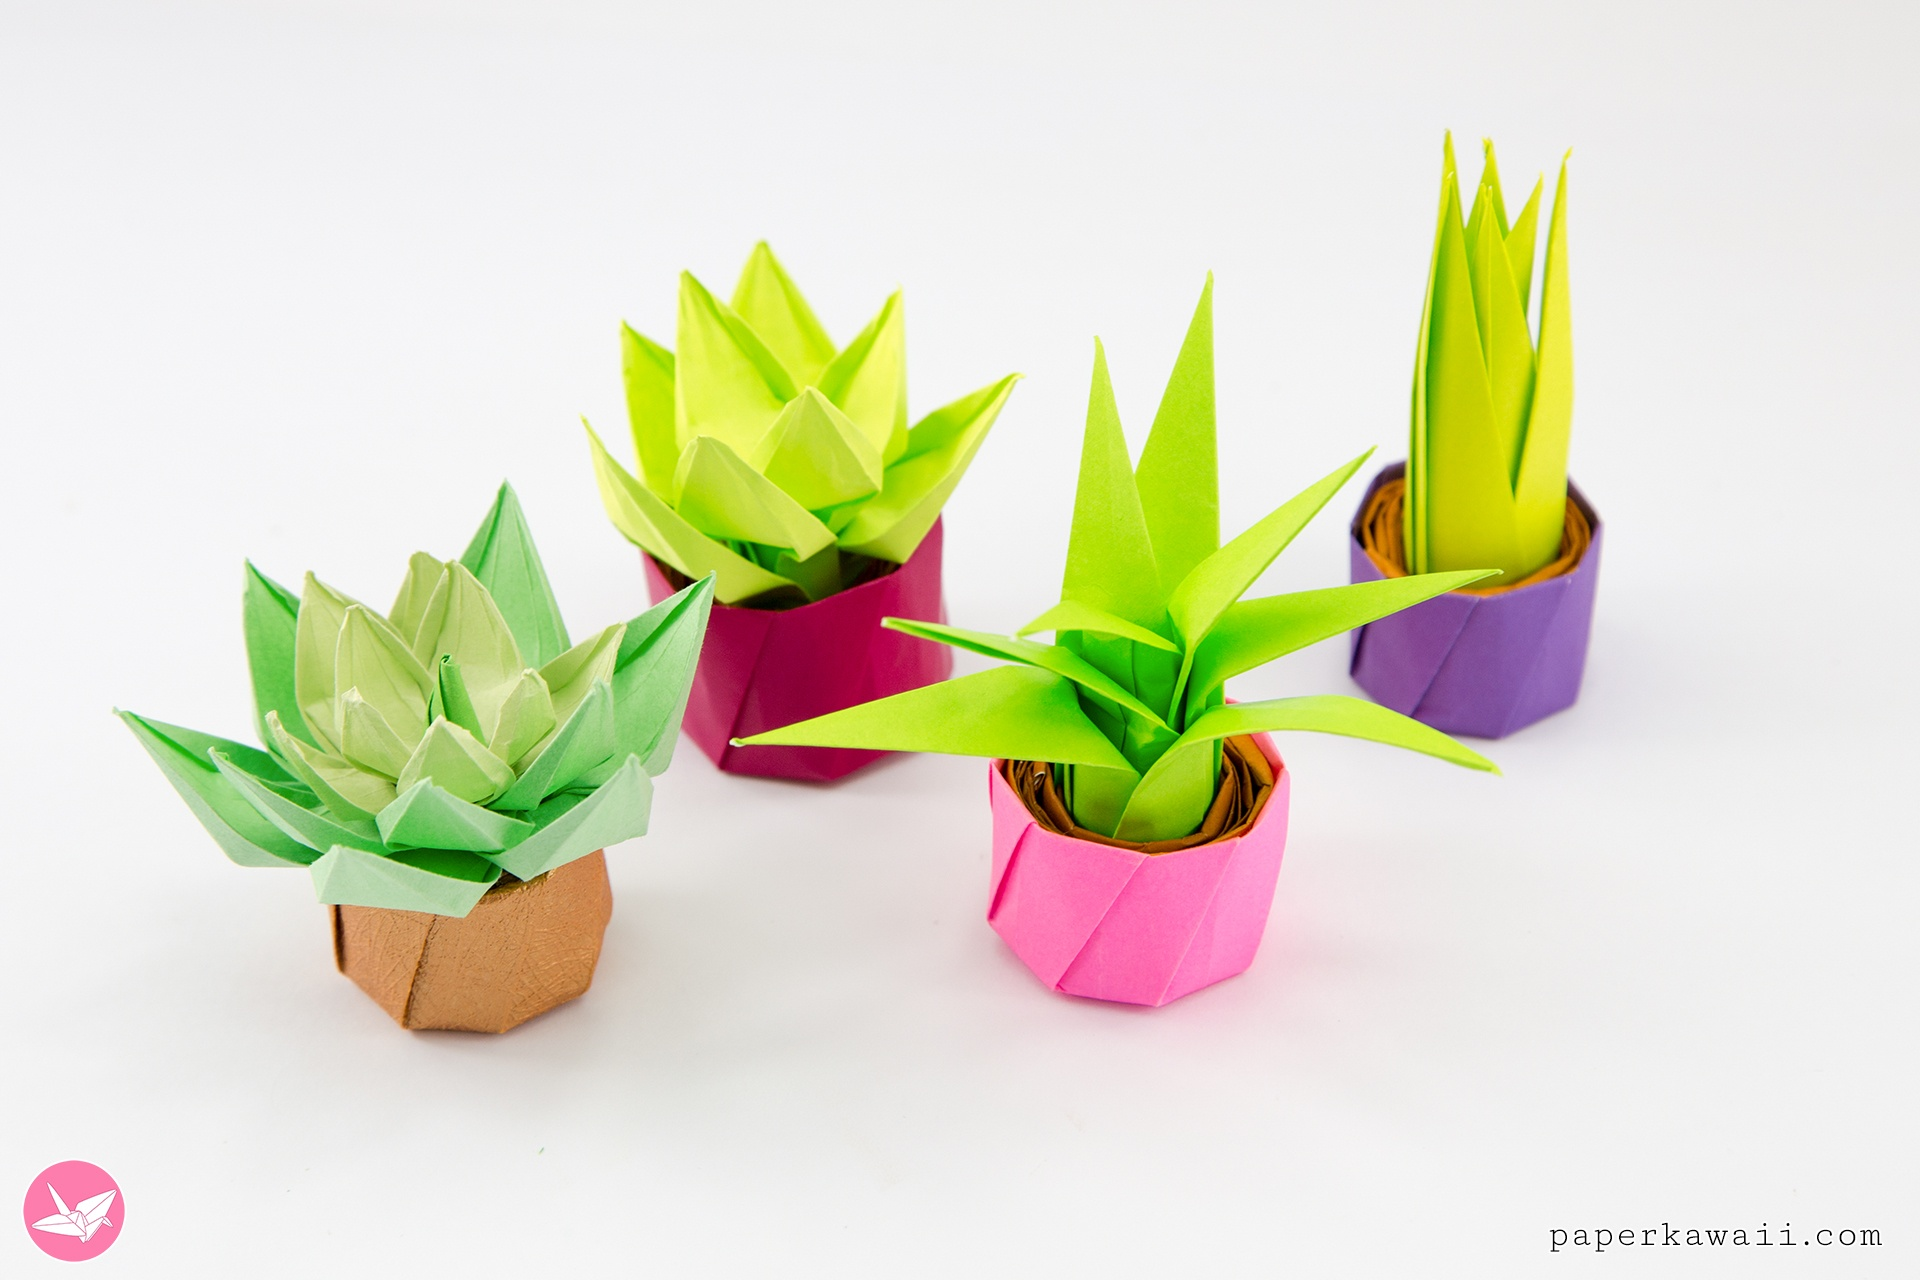 origami-succulent-plants-tutorial-paper-kawaii-01